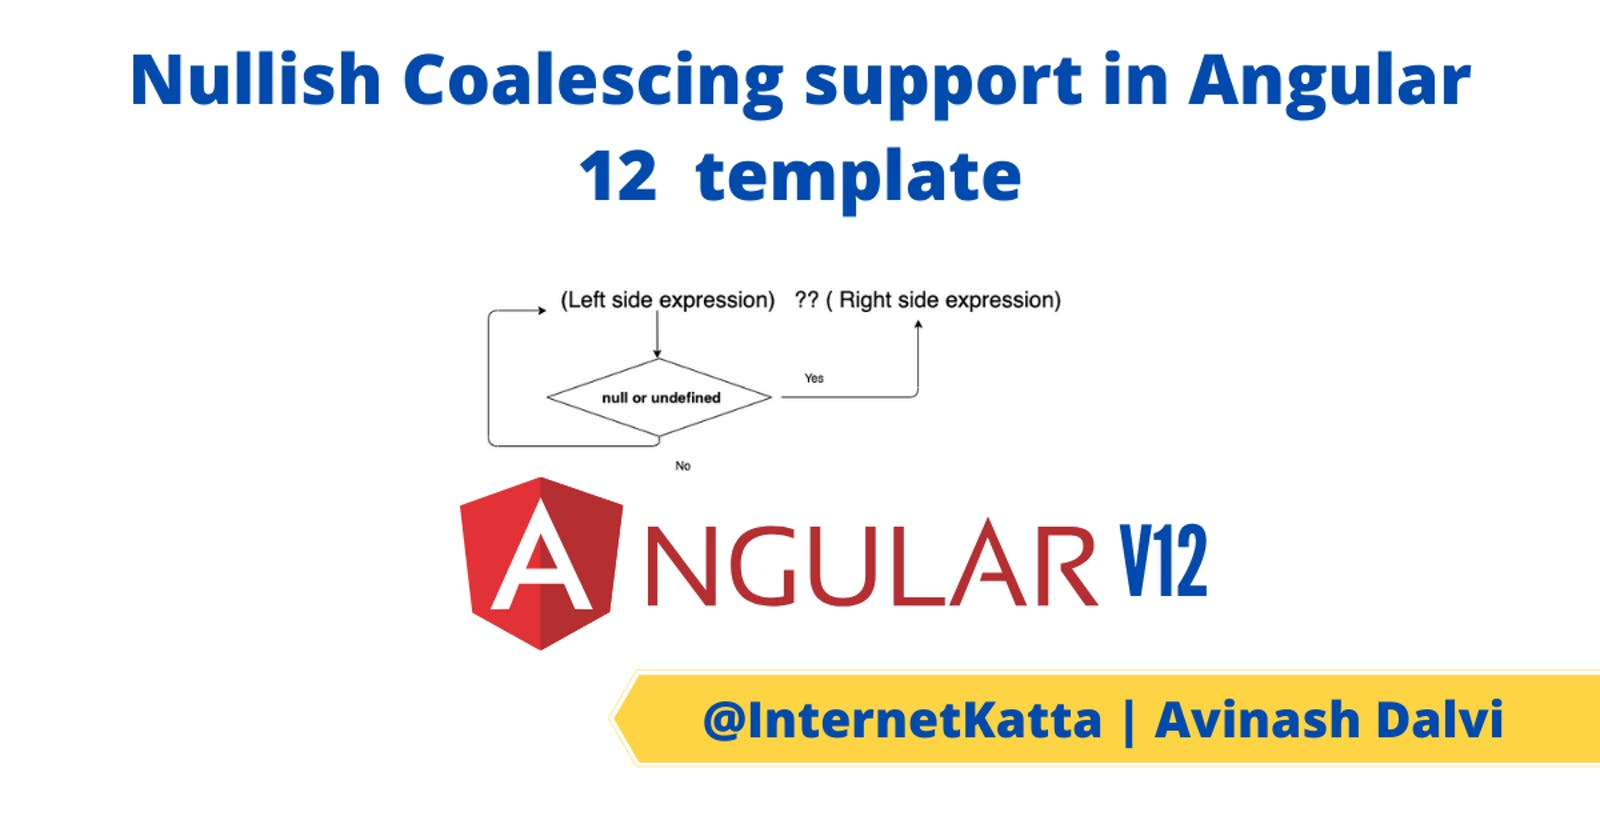 Nullish Coalescing support in Angular template